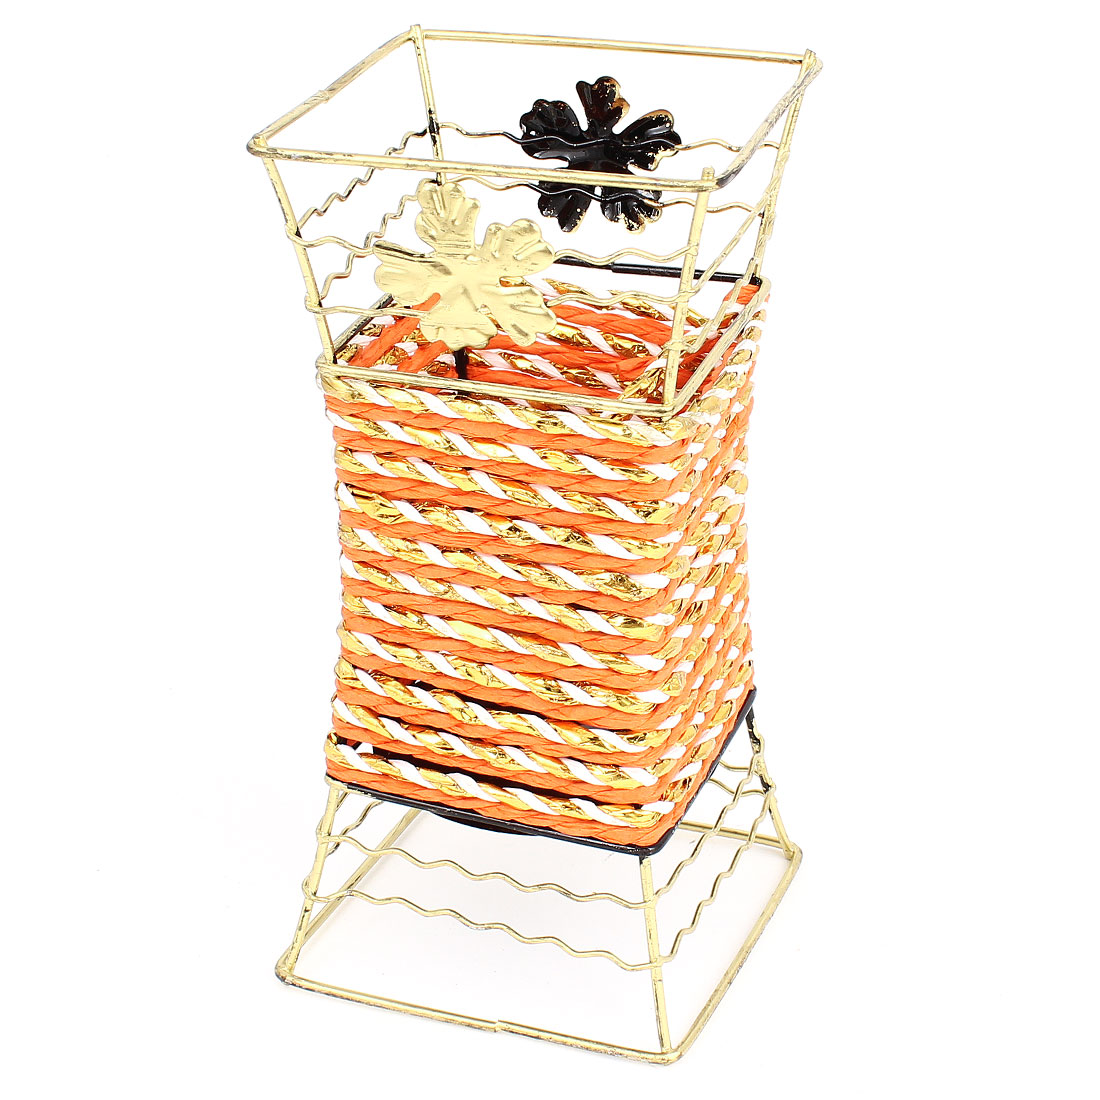 Bronze Tone Metal Frame Orange Woven Artificial Flowers Basket Desktop Decor